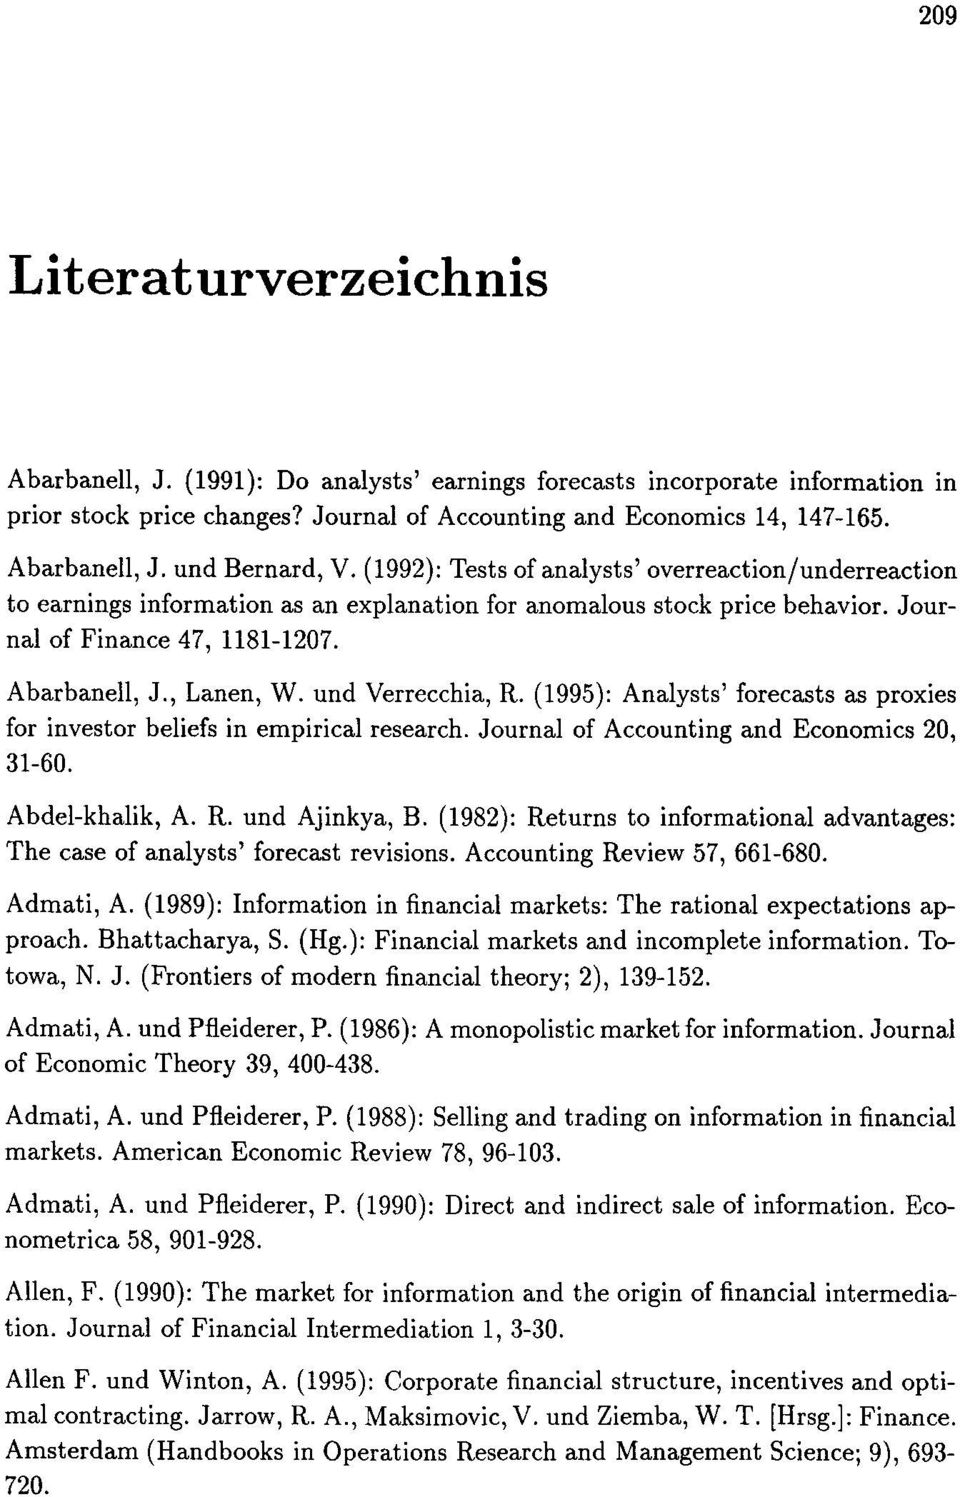 und Verrecchia, R. (1995): Analysts' forecasts as proxies for investor beliefs in empirical research. Journal of Accounting and Economics 20, 31-60. Abdel-khalik, A. R. und Ajinkya, B.